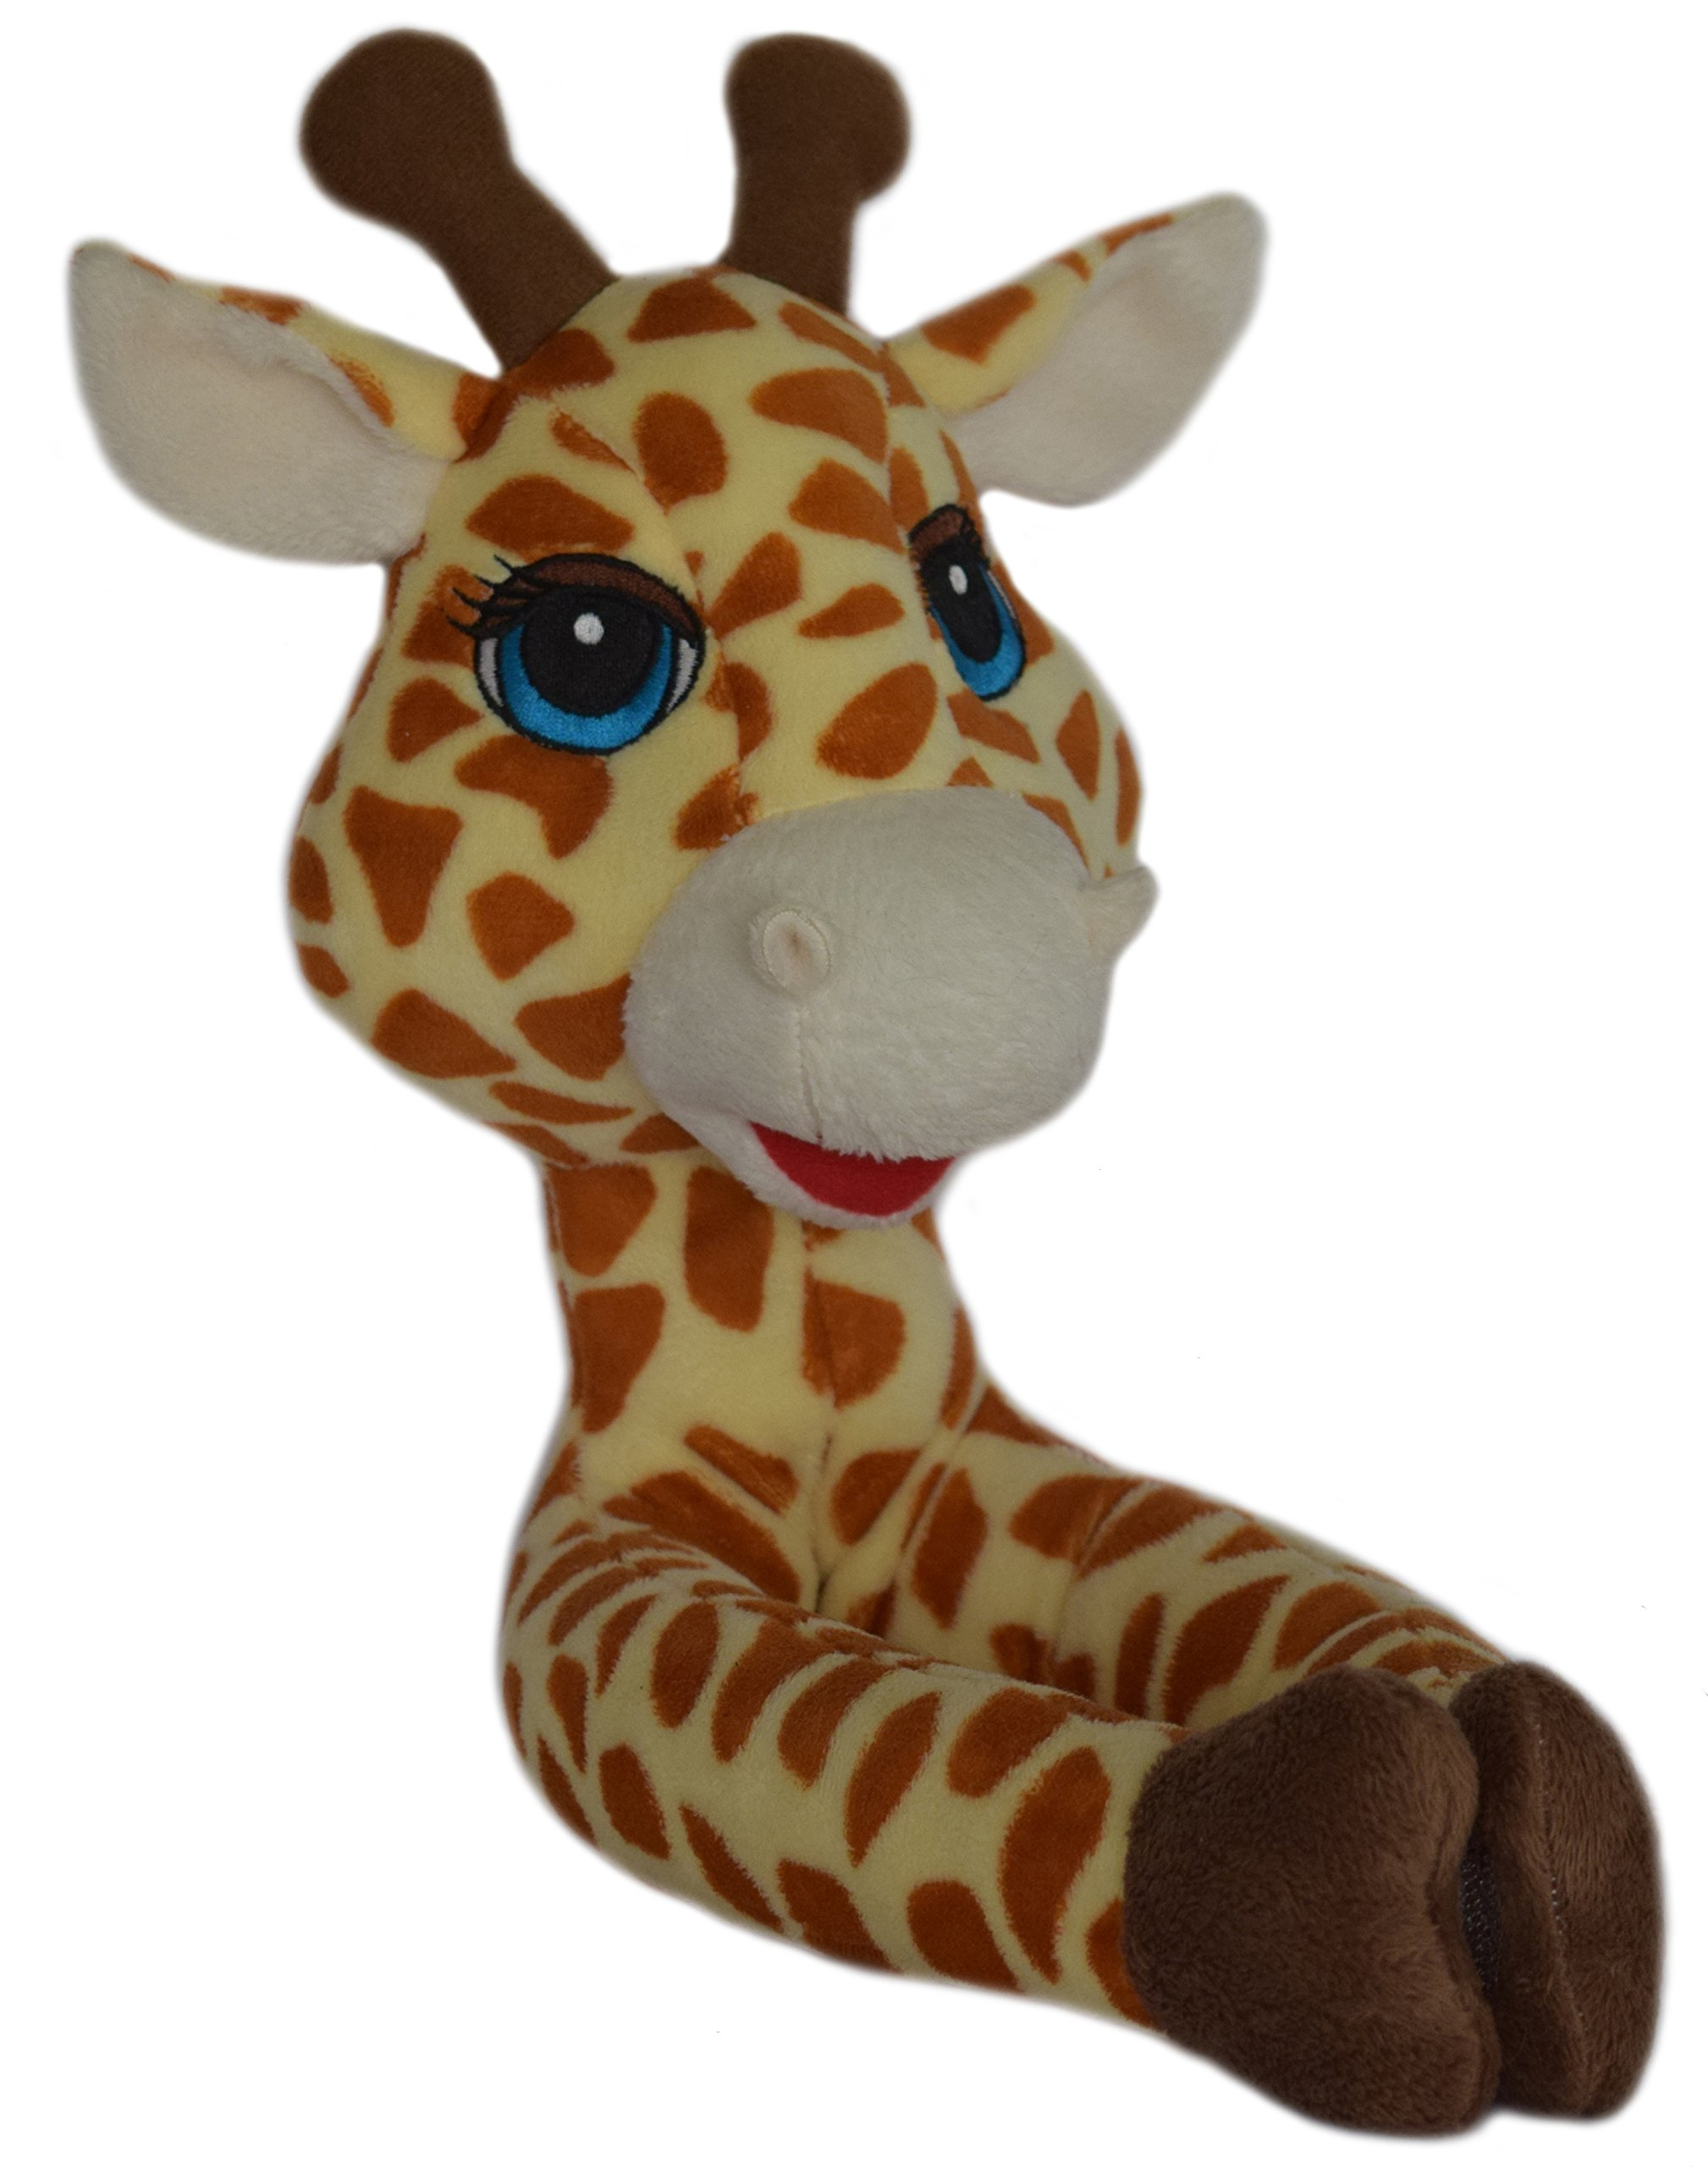 Curtain Critters ALGFMY240510COL Plush Safari Giraffe and Chocolate Monkey Curtain Tieback Collector Set by Curtain Critters